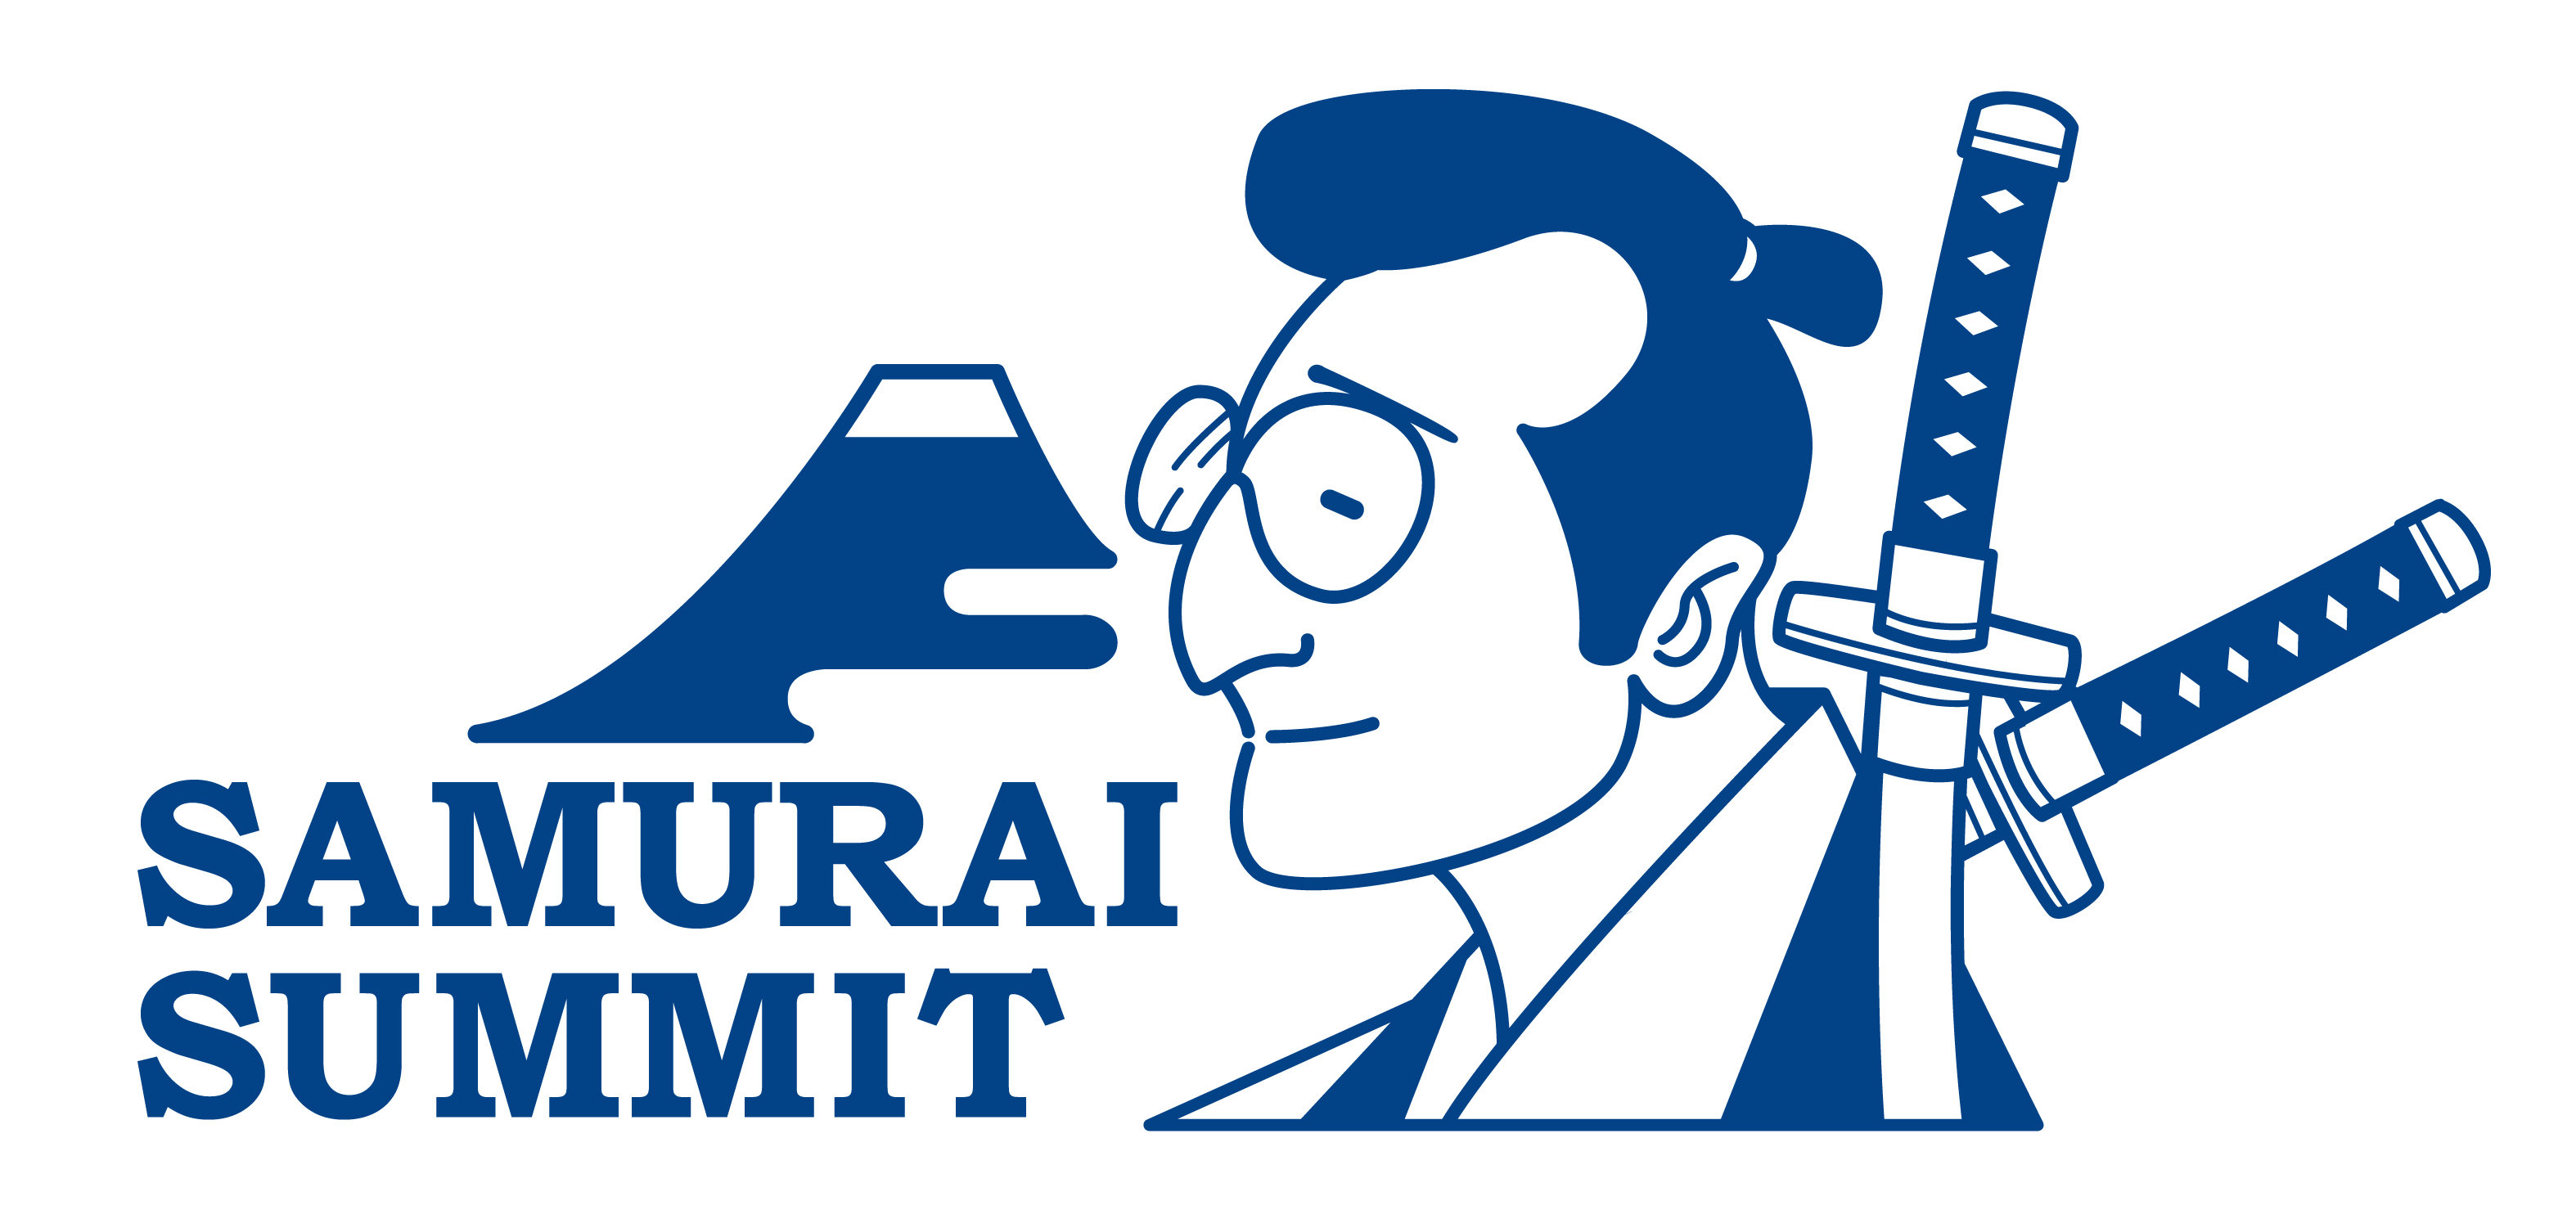 株式会社SAMURAI SUMMIT